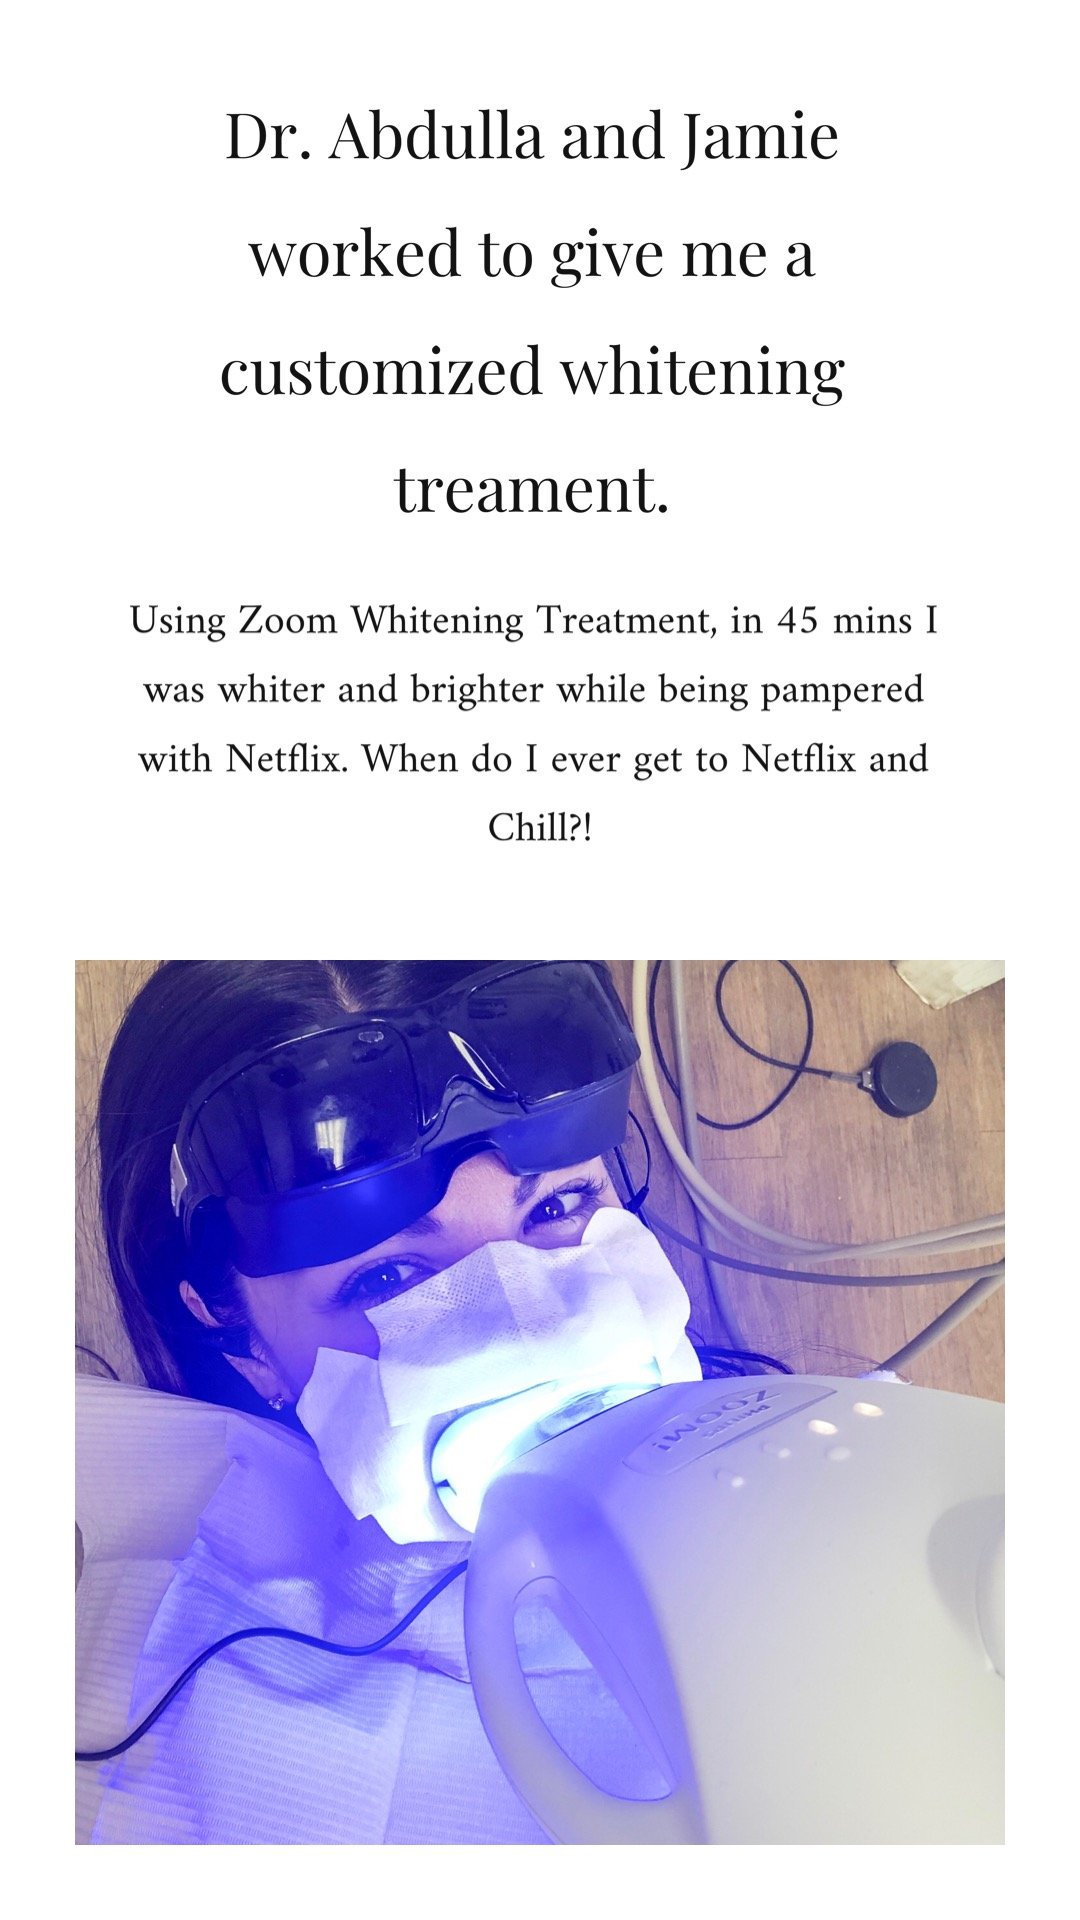 Lifestyle Blogger Chocolate & Lace shares her experience with Zoom Whitening Treatments.